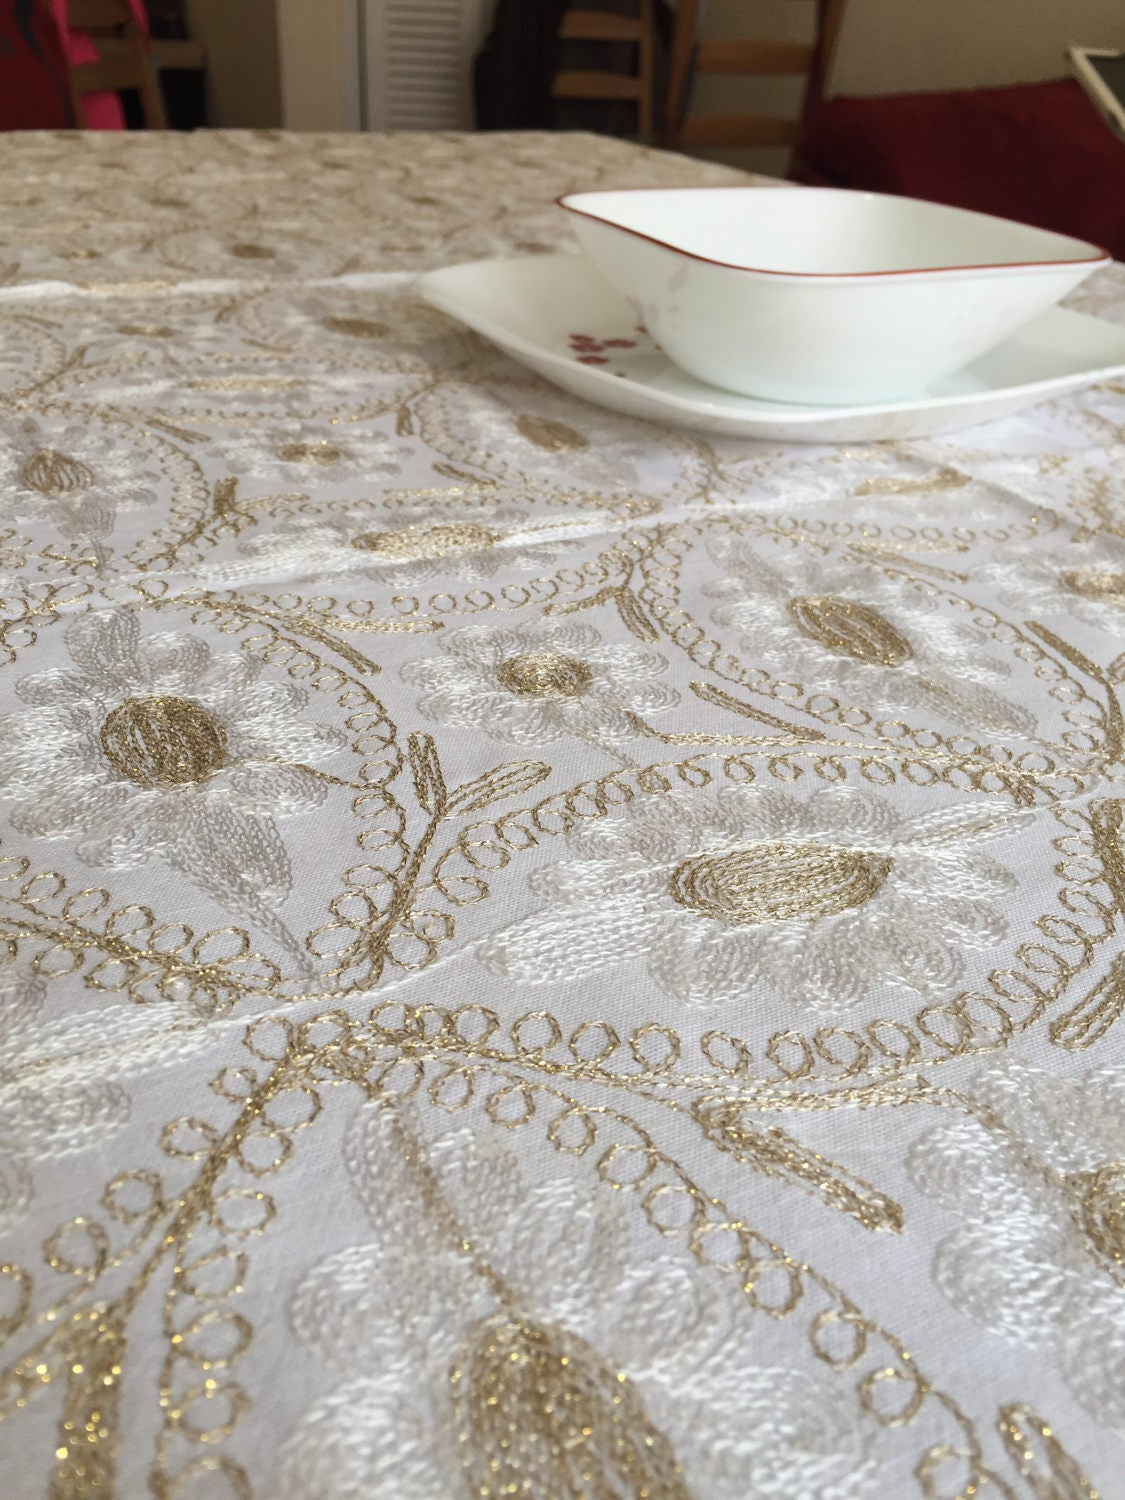 Tablecloth 80 X 60 Inches, And 8 Napkins, Aghabani Tablecloth, Embroidered White  Tablecloth, Syrian Textiles, White And Gold Tablecloth